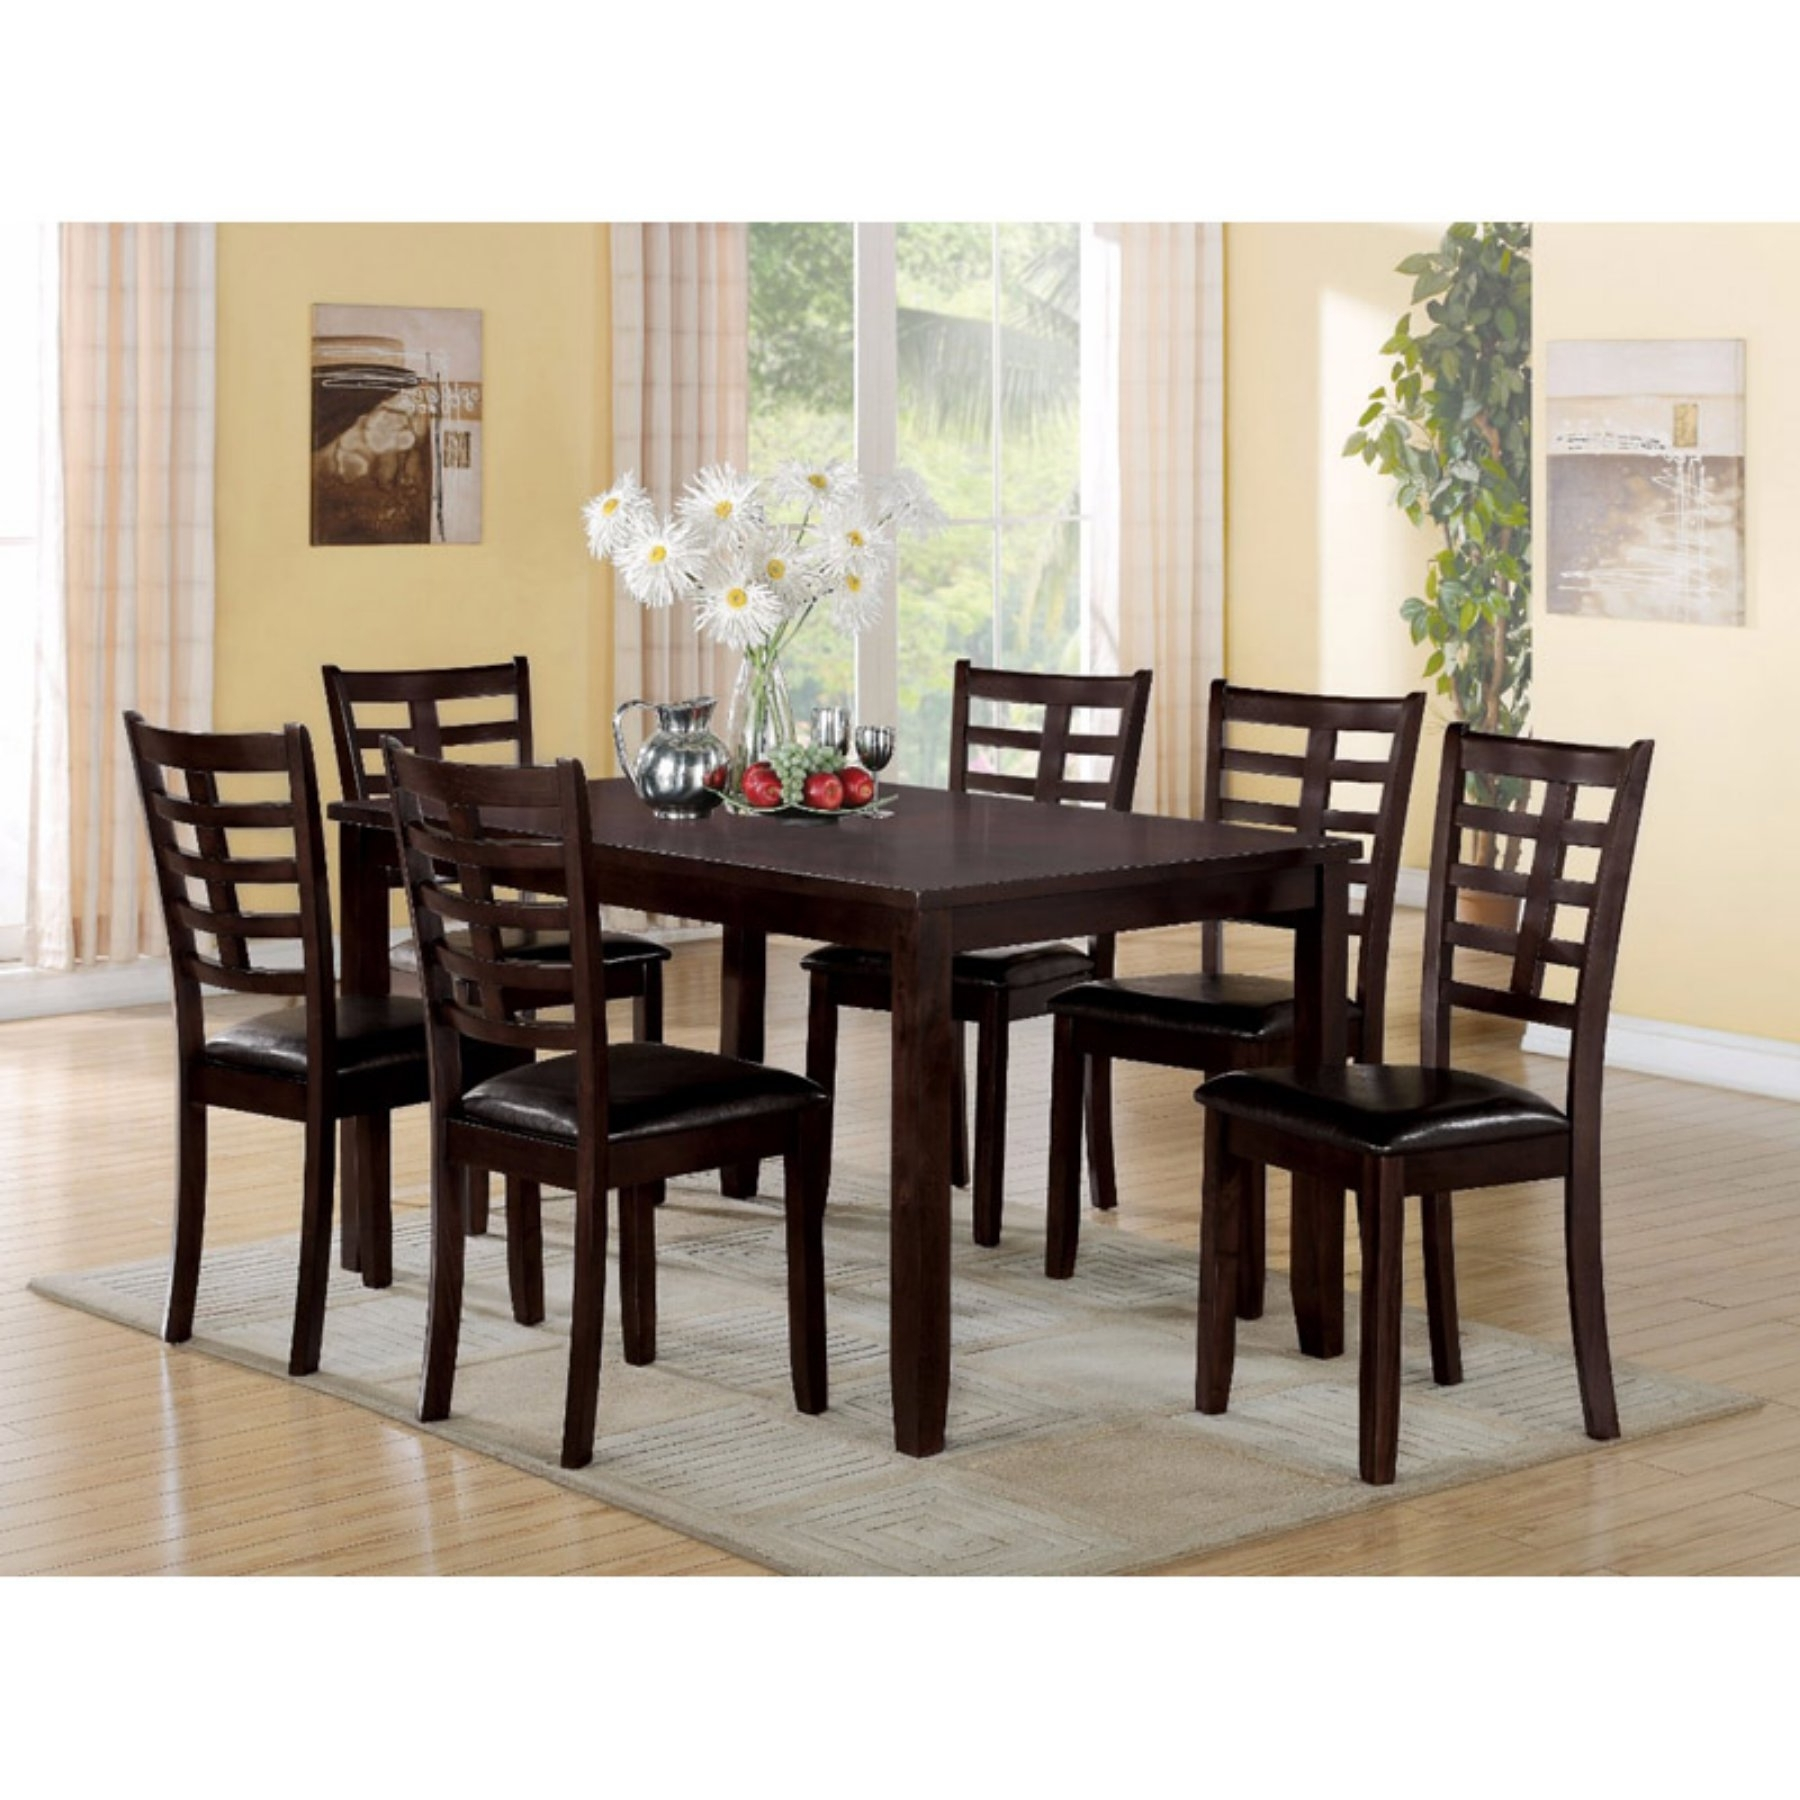 Favorite Benzara Wooden 7 Piece Rectangular Dining Table Set In 2018 Regarding Market 7 Piece Counter Sets (View 3 of 25)